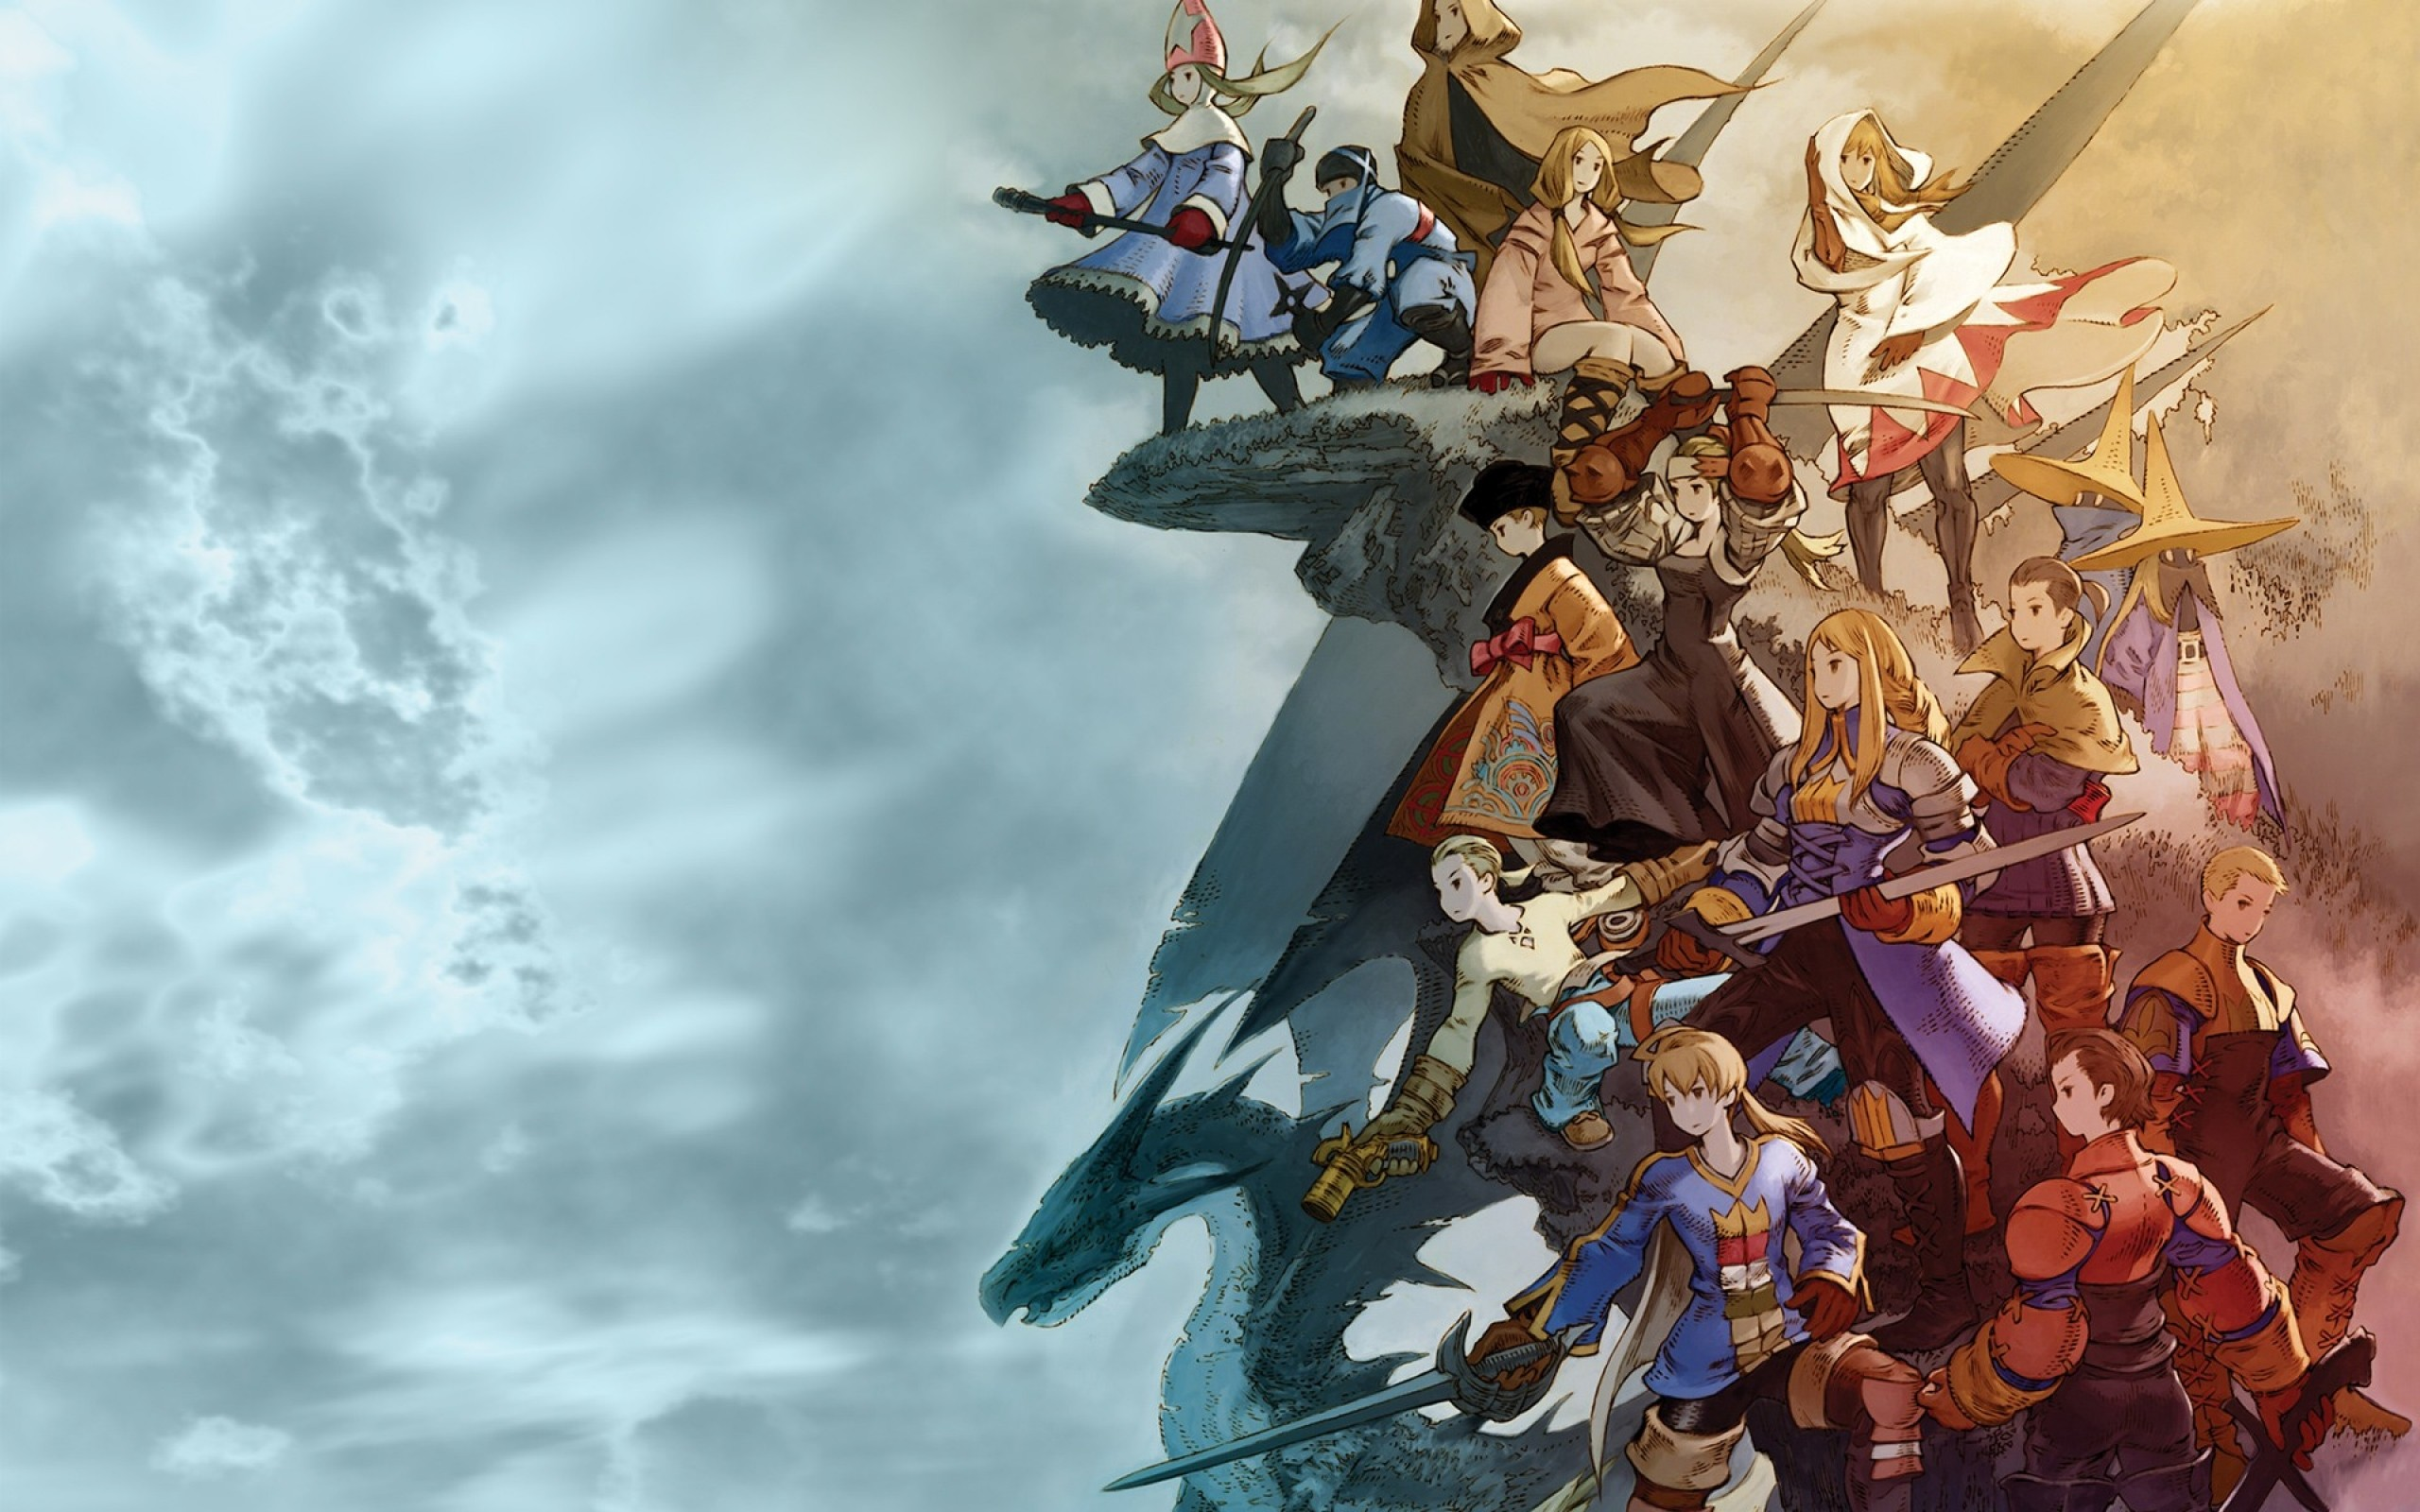 Res: 2560x1600, Previous: Final Fantasy Tactics ...